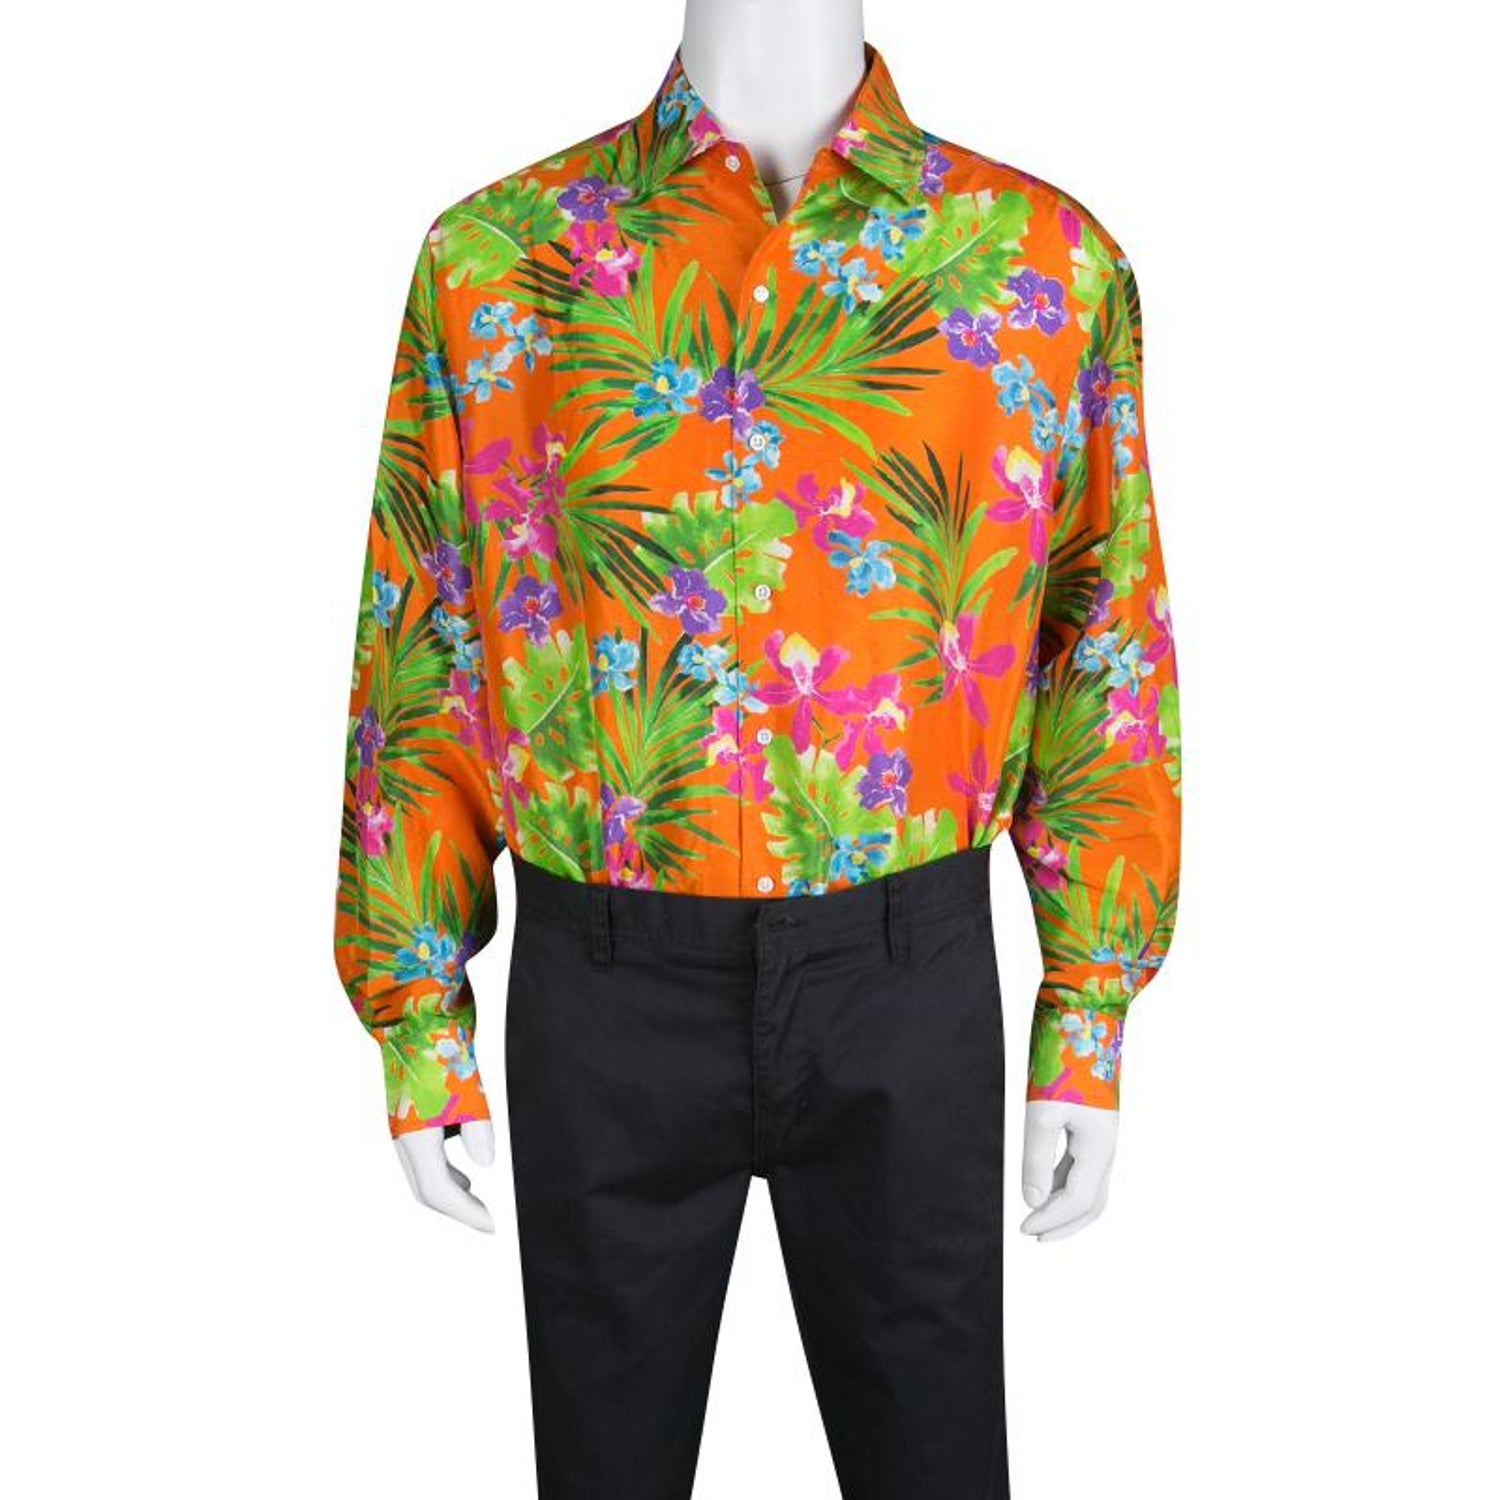 b01ec555 Ralph Lauren Orange Tropical Floral Print Button Front Silk Shirt XXL For  Sale at 1stdibs